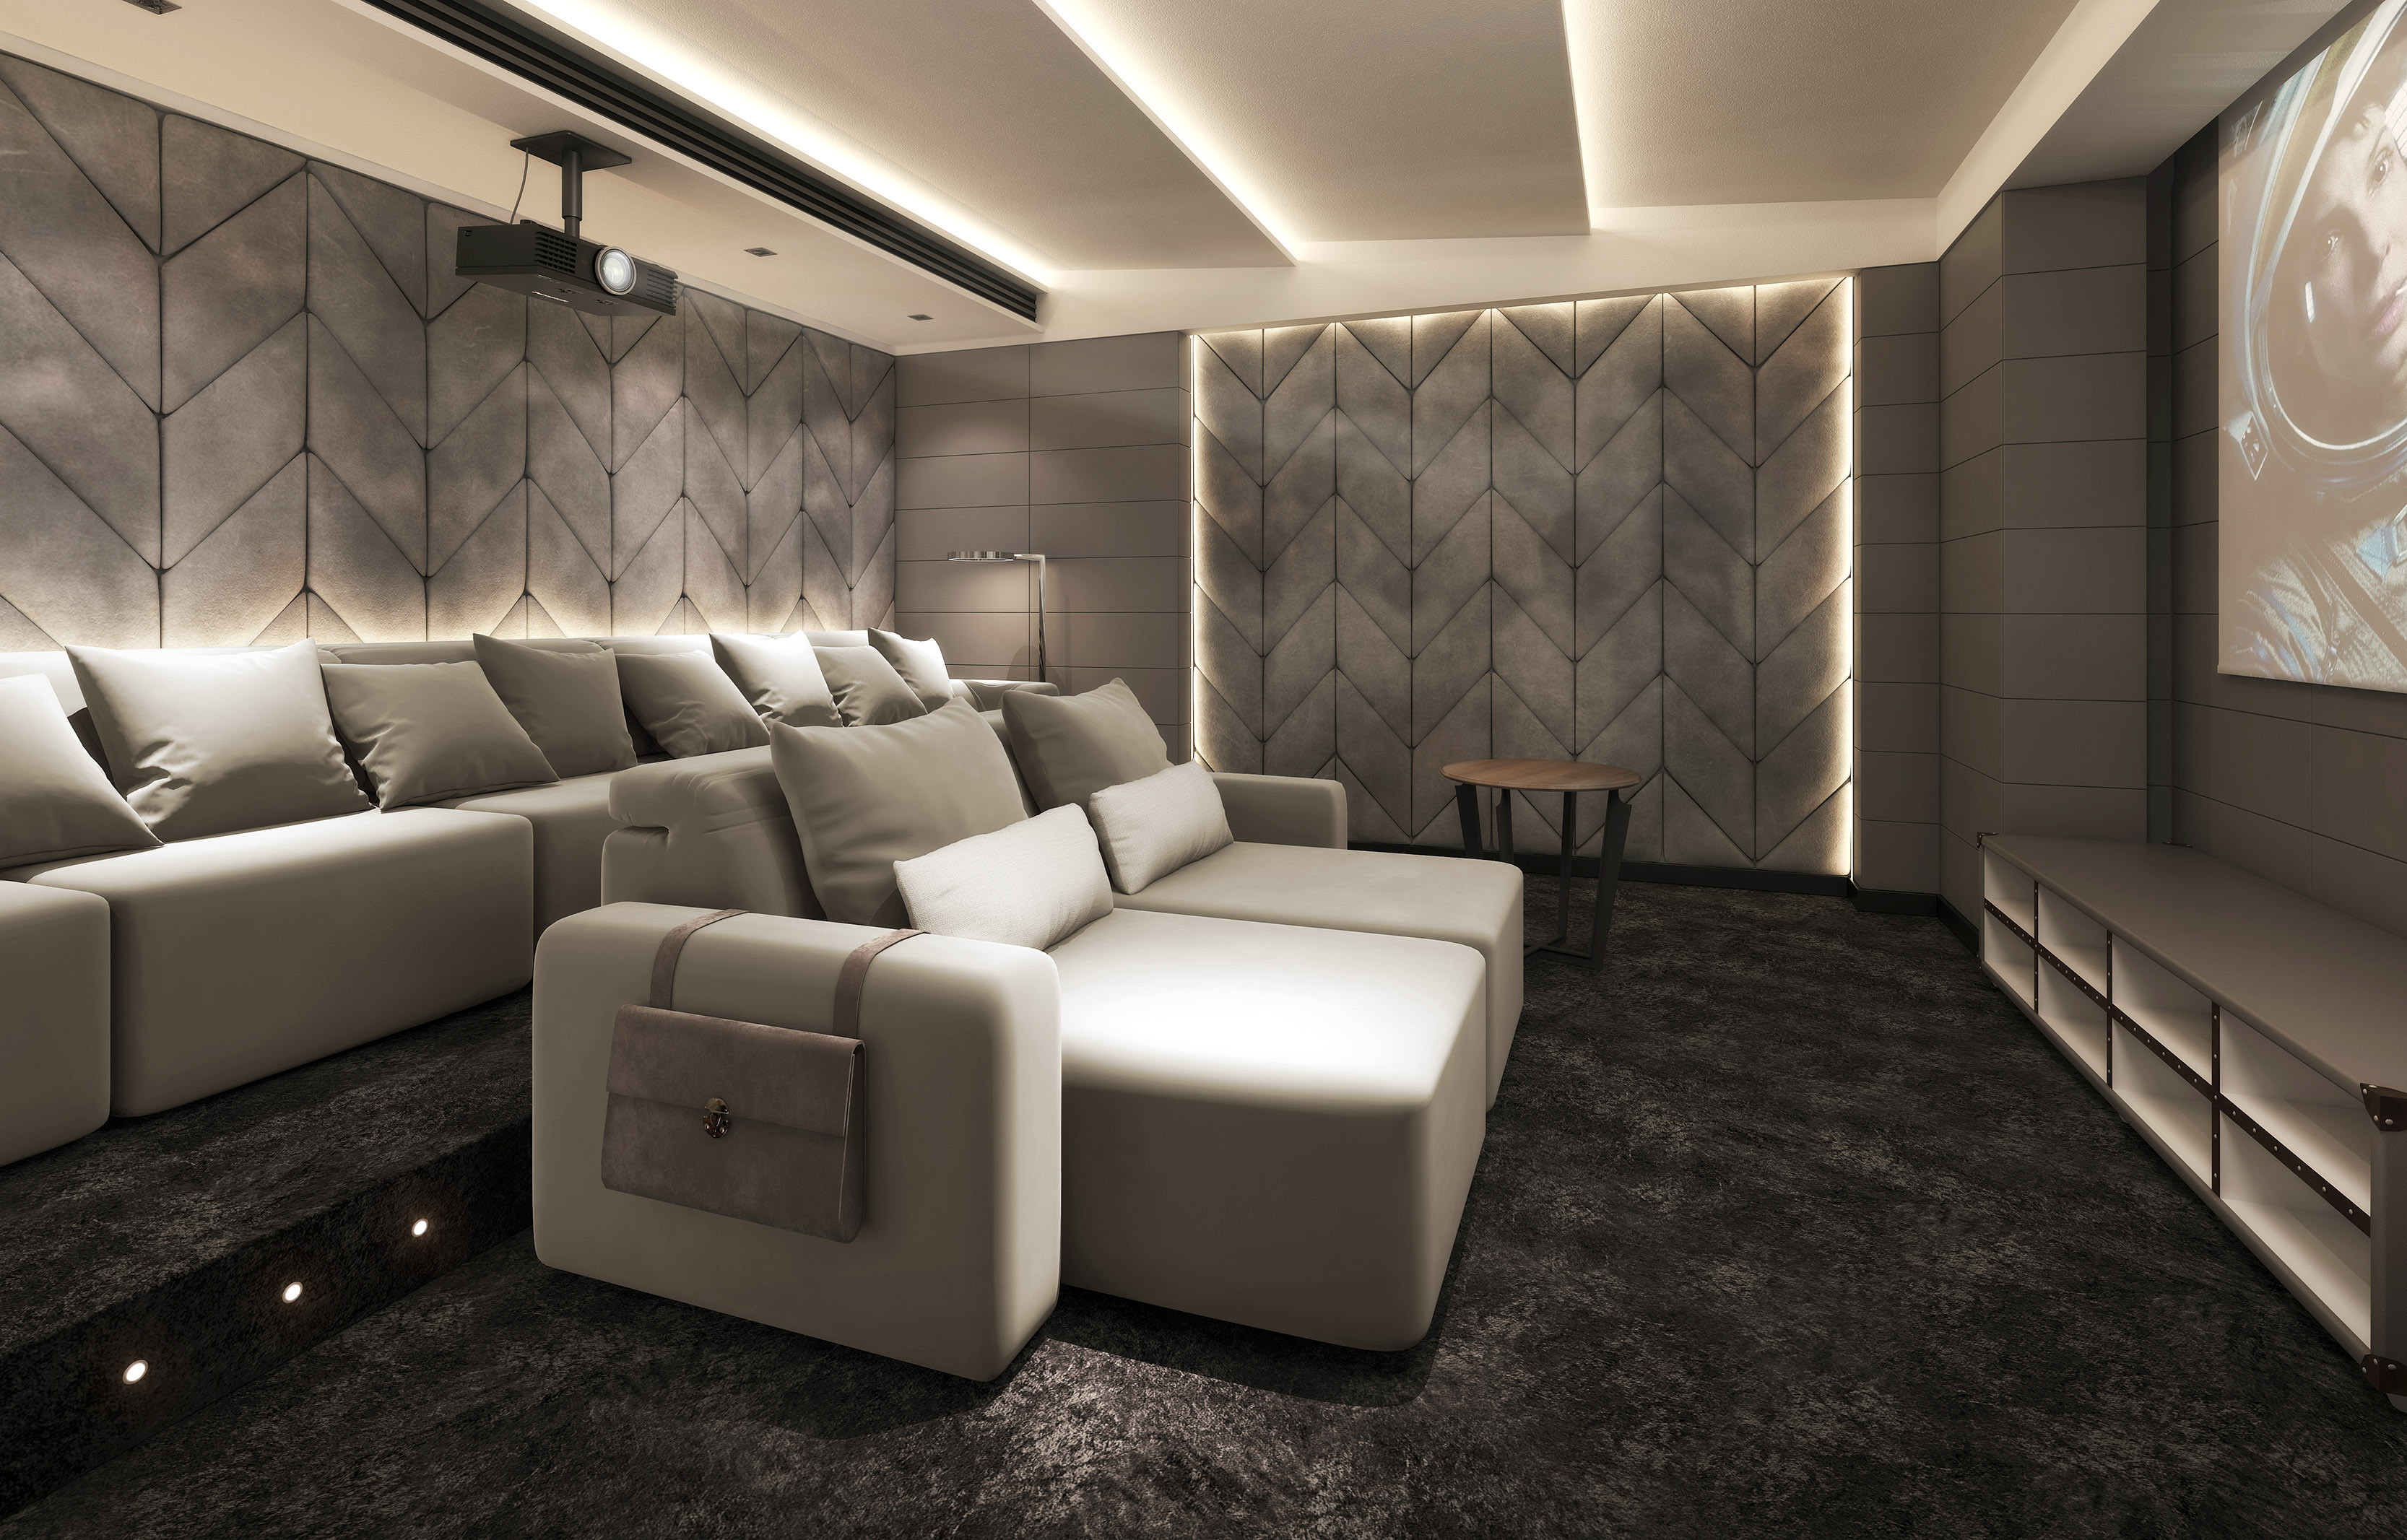 Home Cinema Designs Luxury Home Cinema Seating Home Cinema Installation